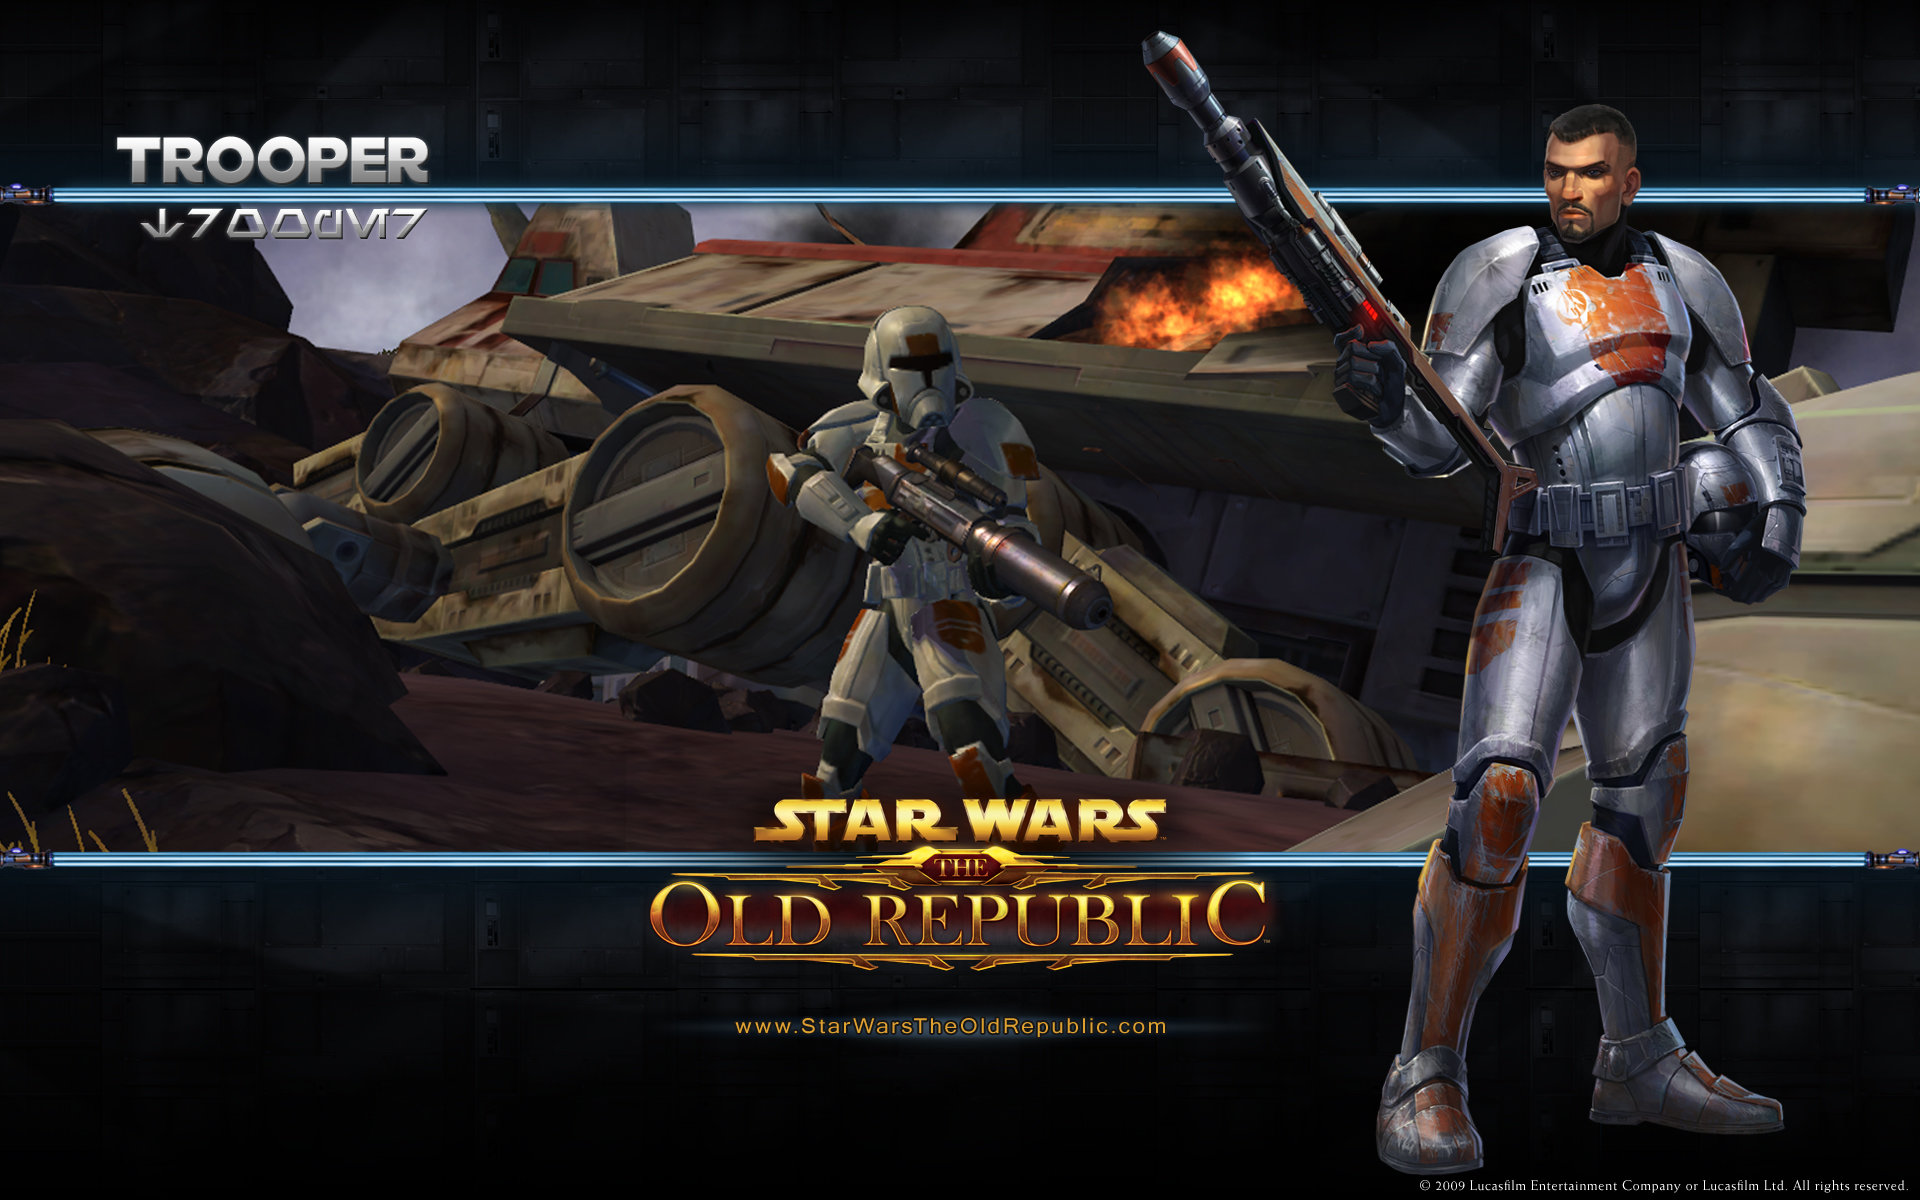 Star Wars The Old Republic Wallpapers Hd For Desktop Backgrounds